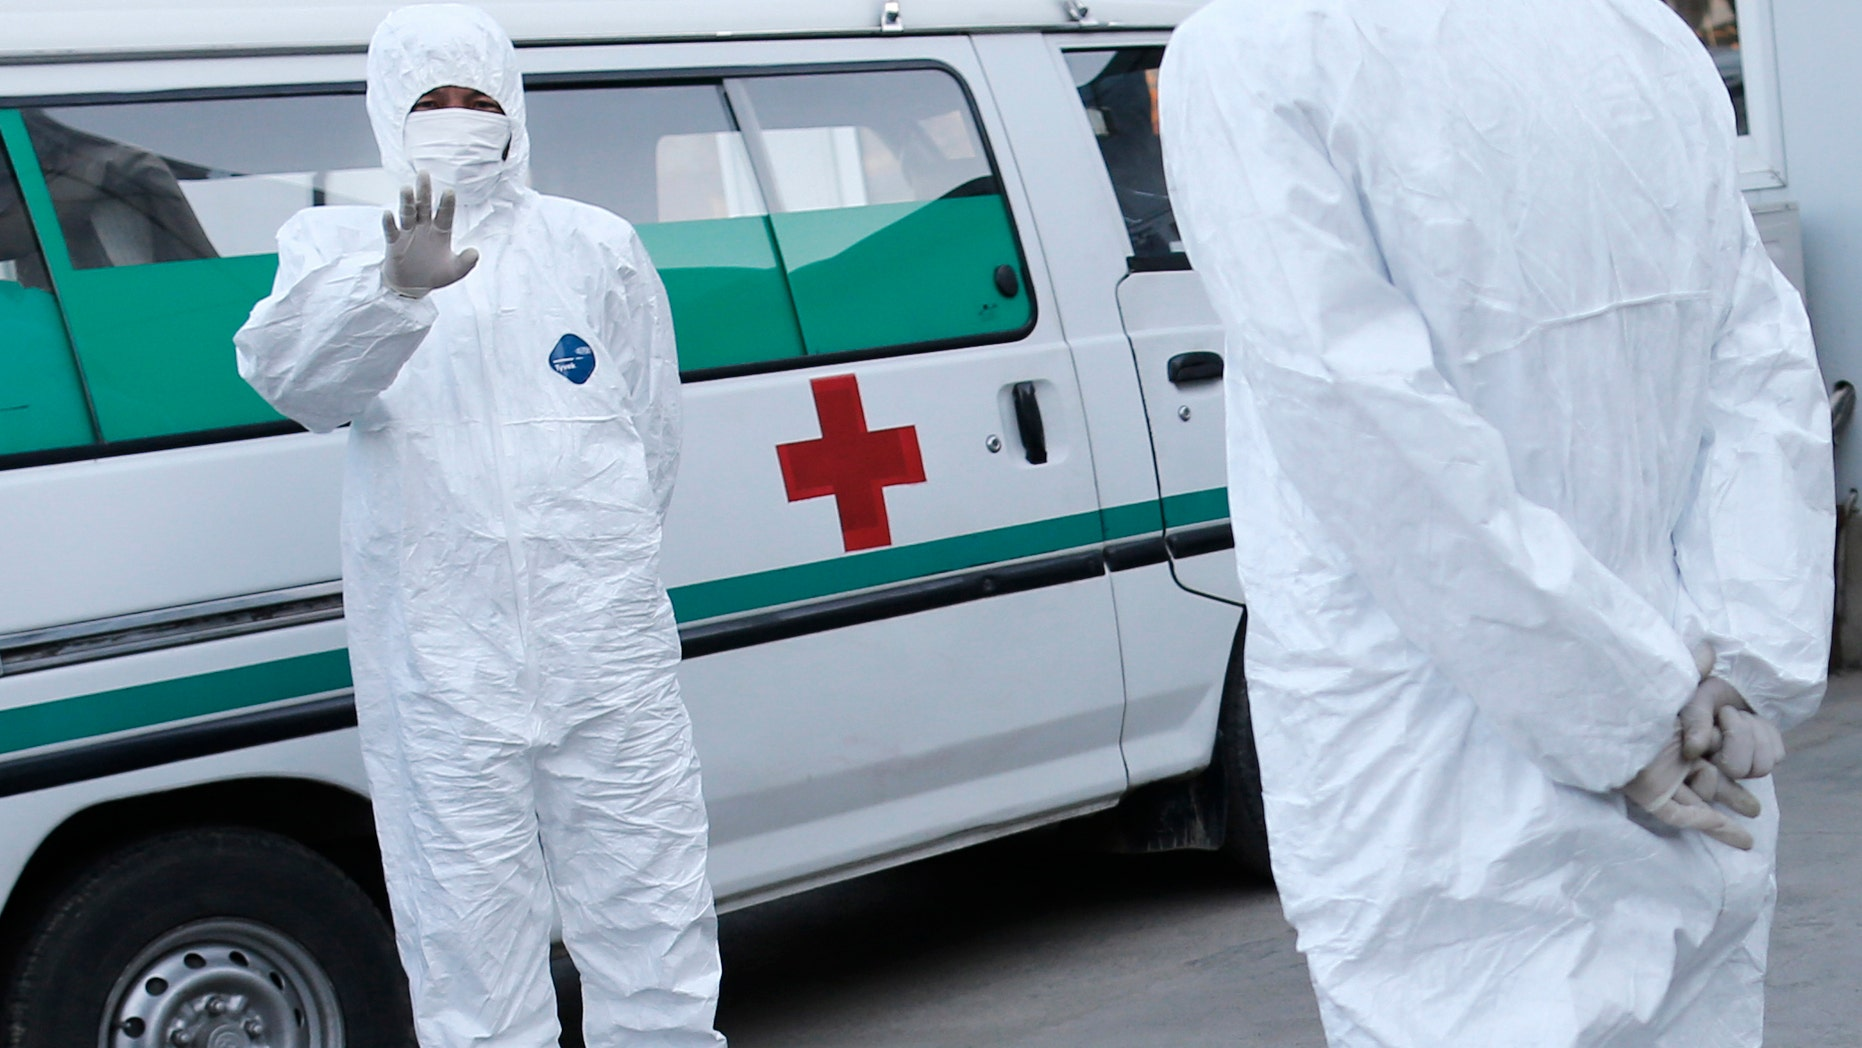 Oct. 27, 2014: Medical personnel in protective suits stand by an ambulance at the Sunan International Airport in Pyongyang, North Korea